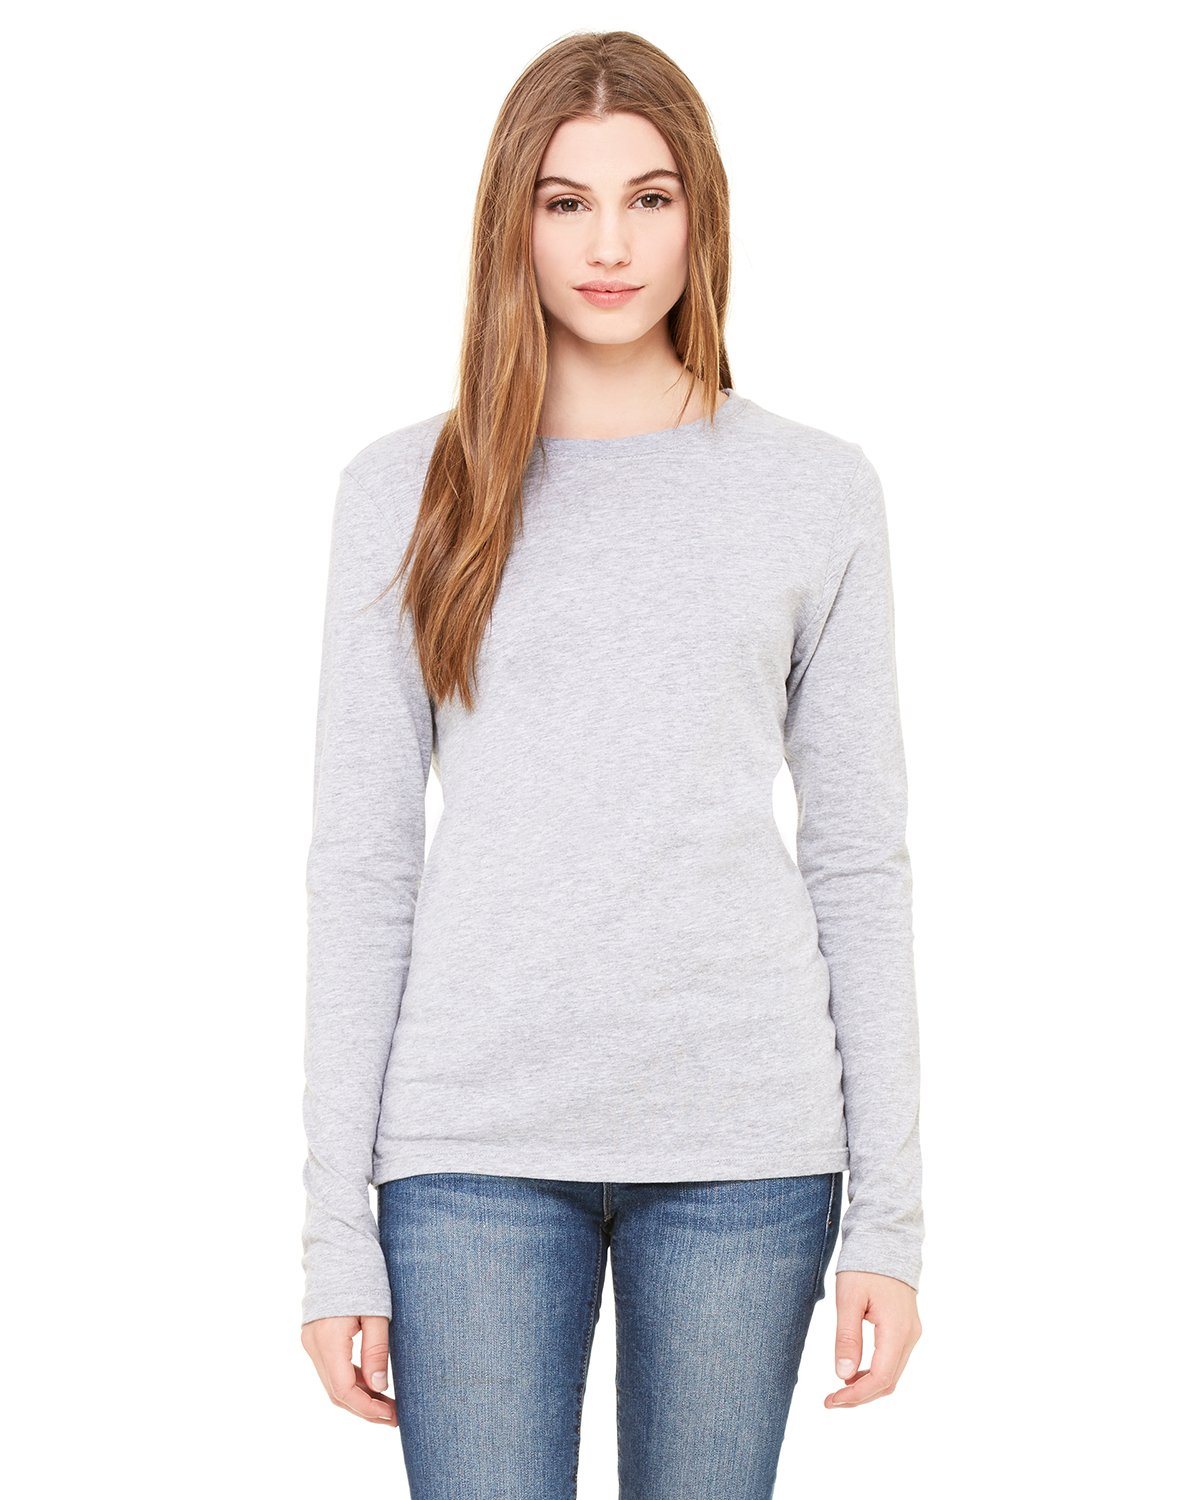 Bella + Canvas - B6500 - Ladies' Jersey Long-Sleeve T-Shirt